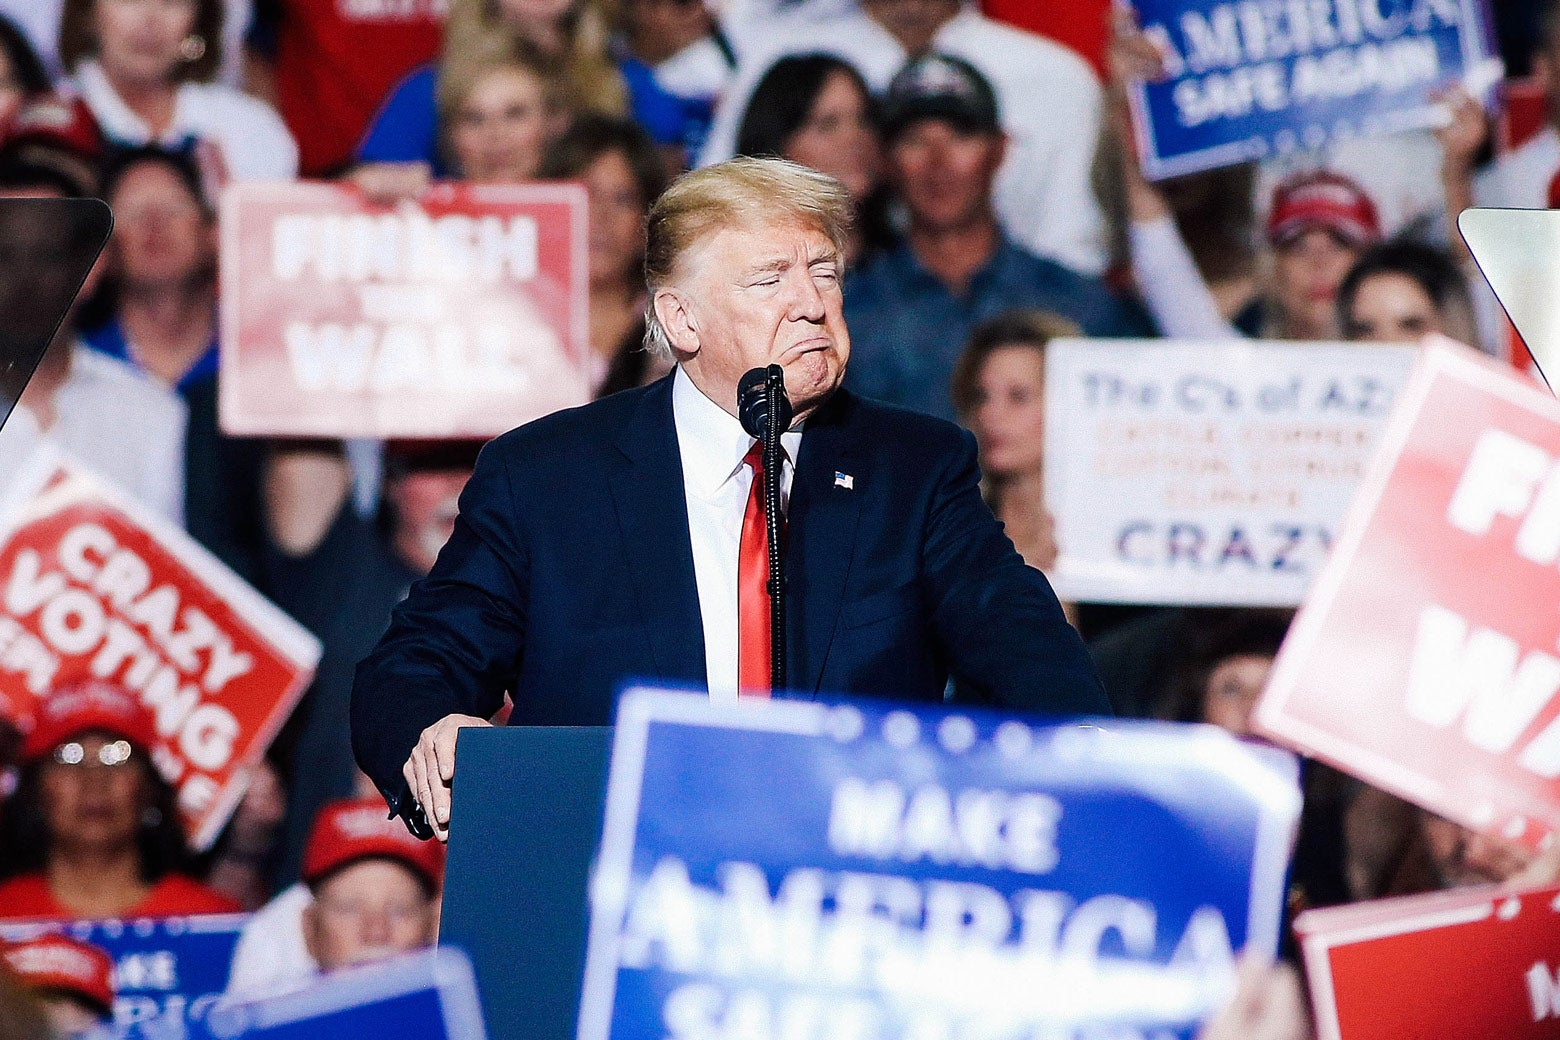 President Donald Trump speaks during a rally on Friday in Mesa, Arizona.